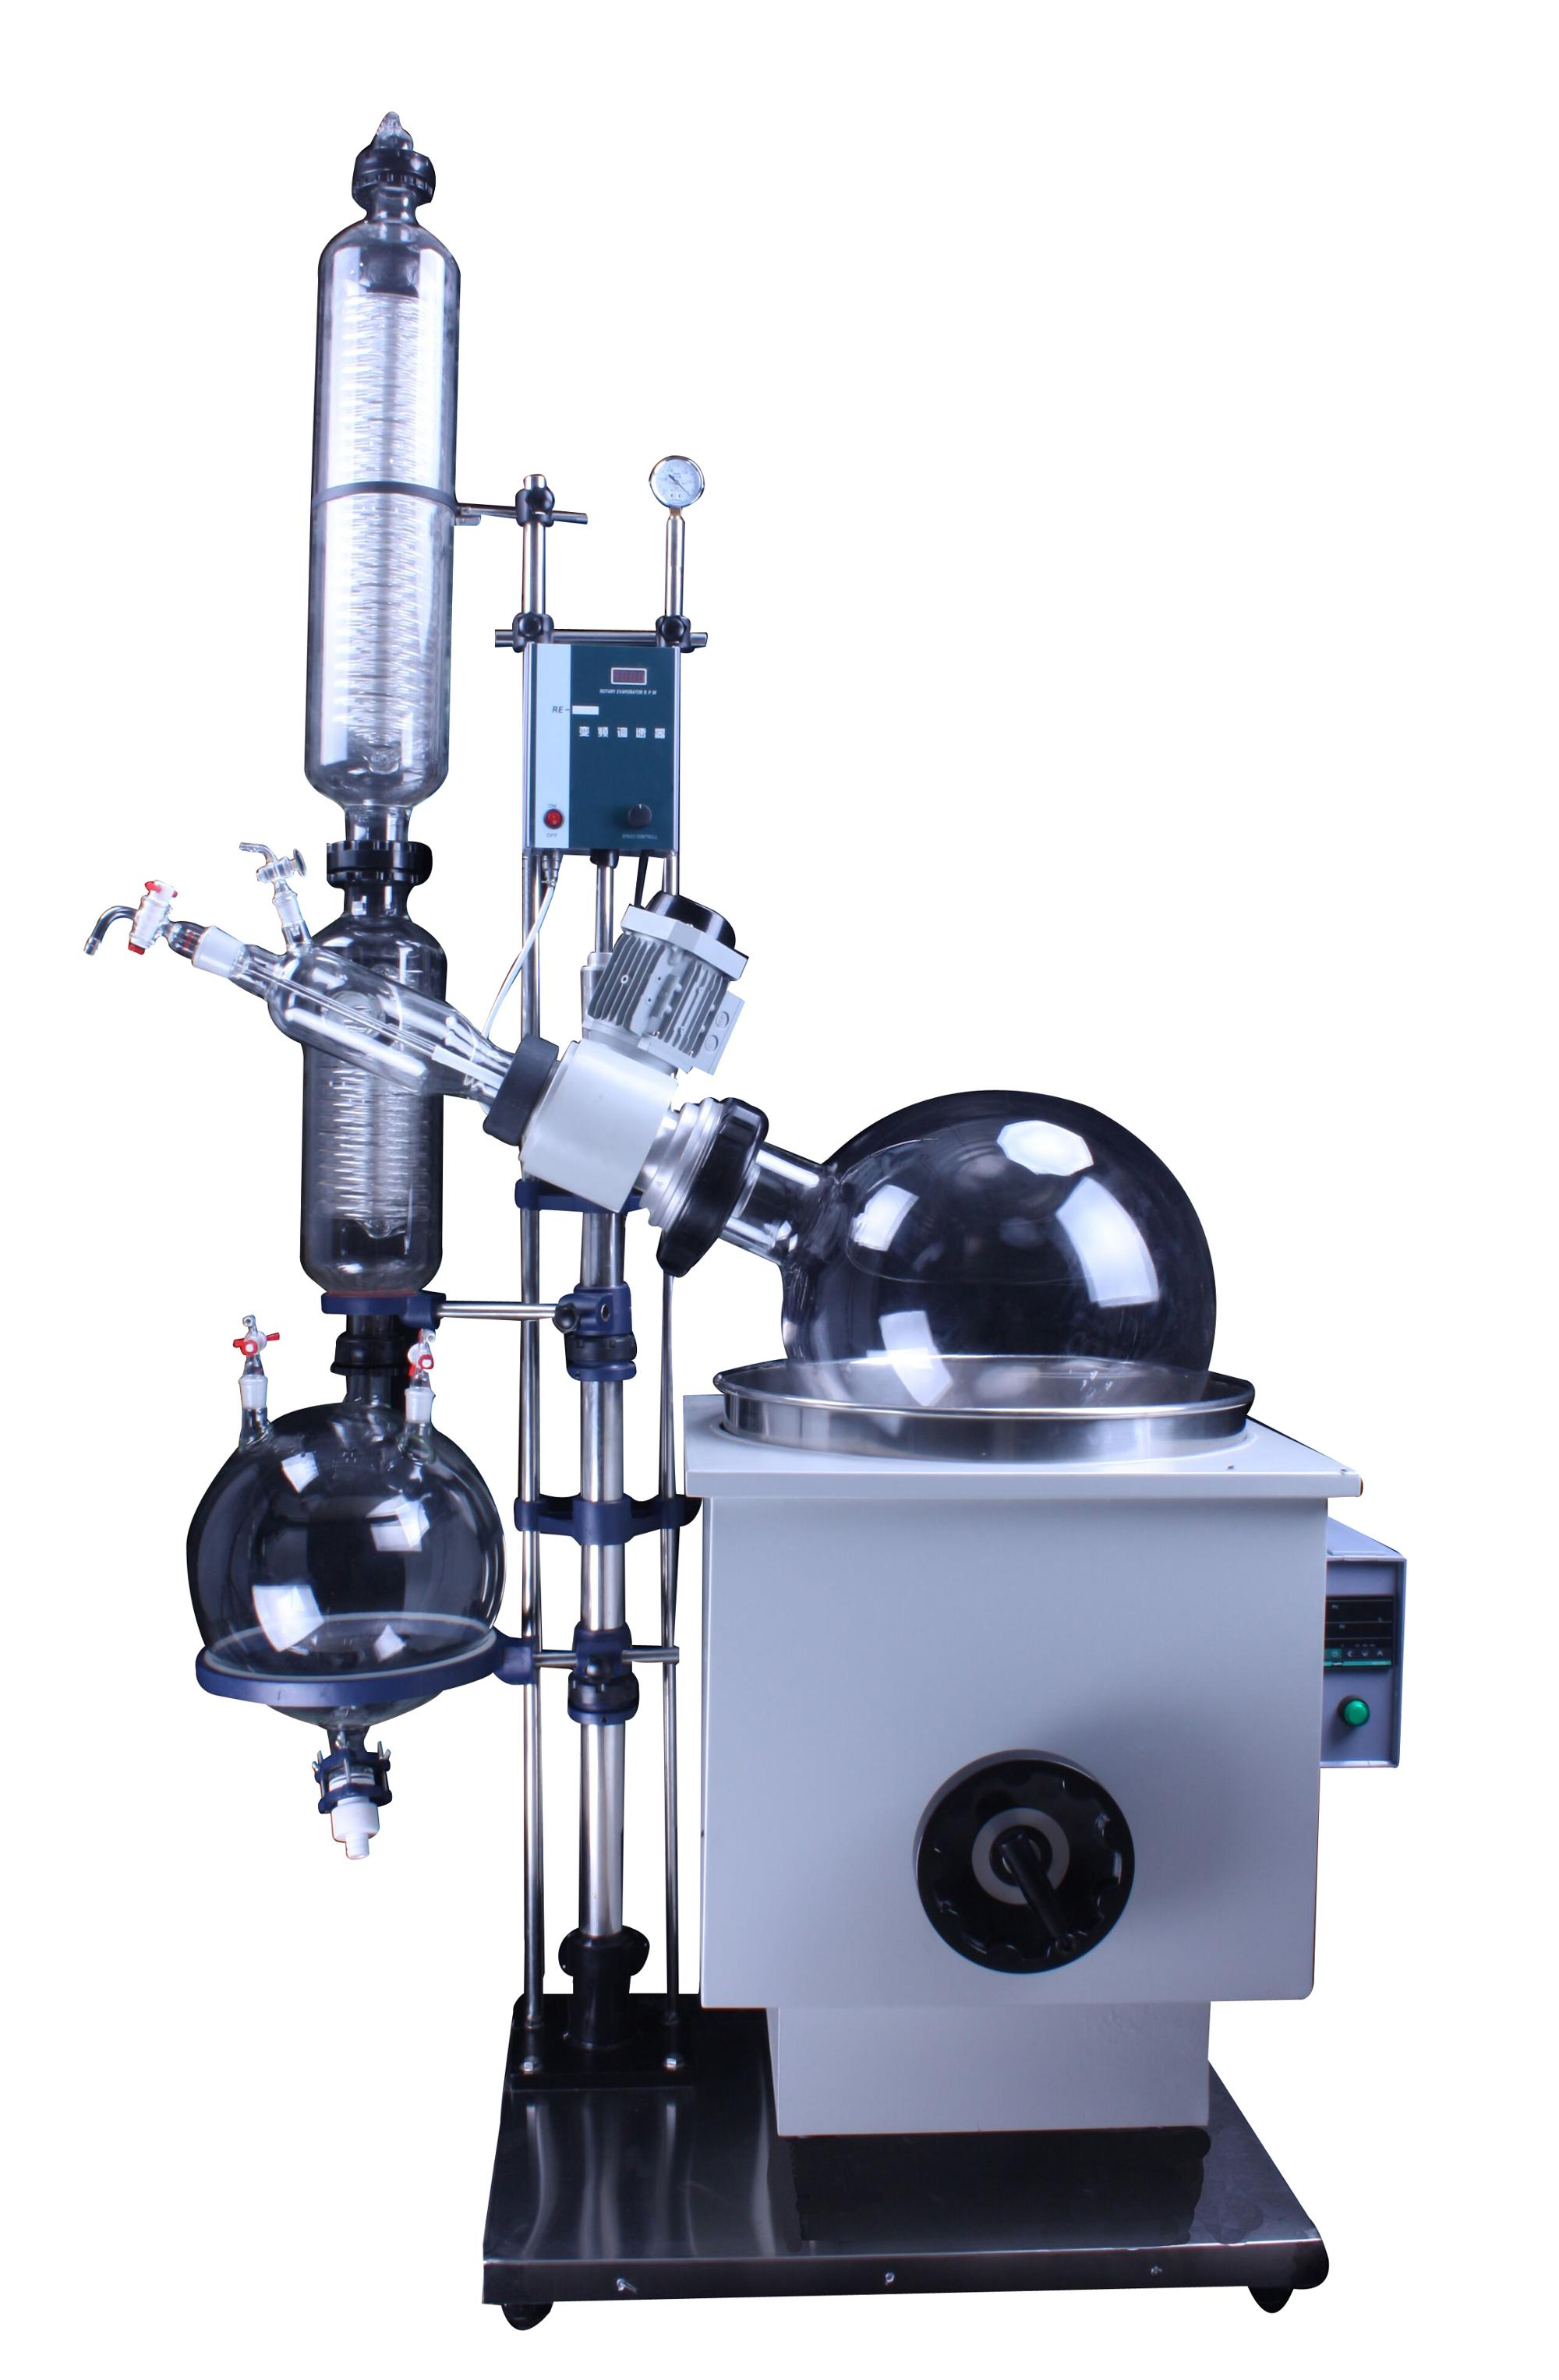 High efficient lab vacuum rotary evaporator with large evaporation area